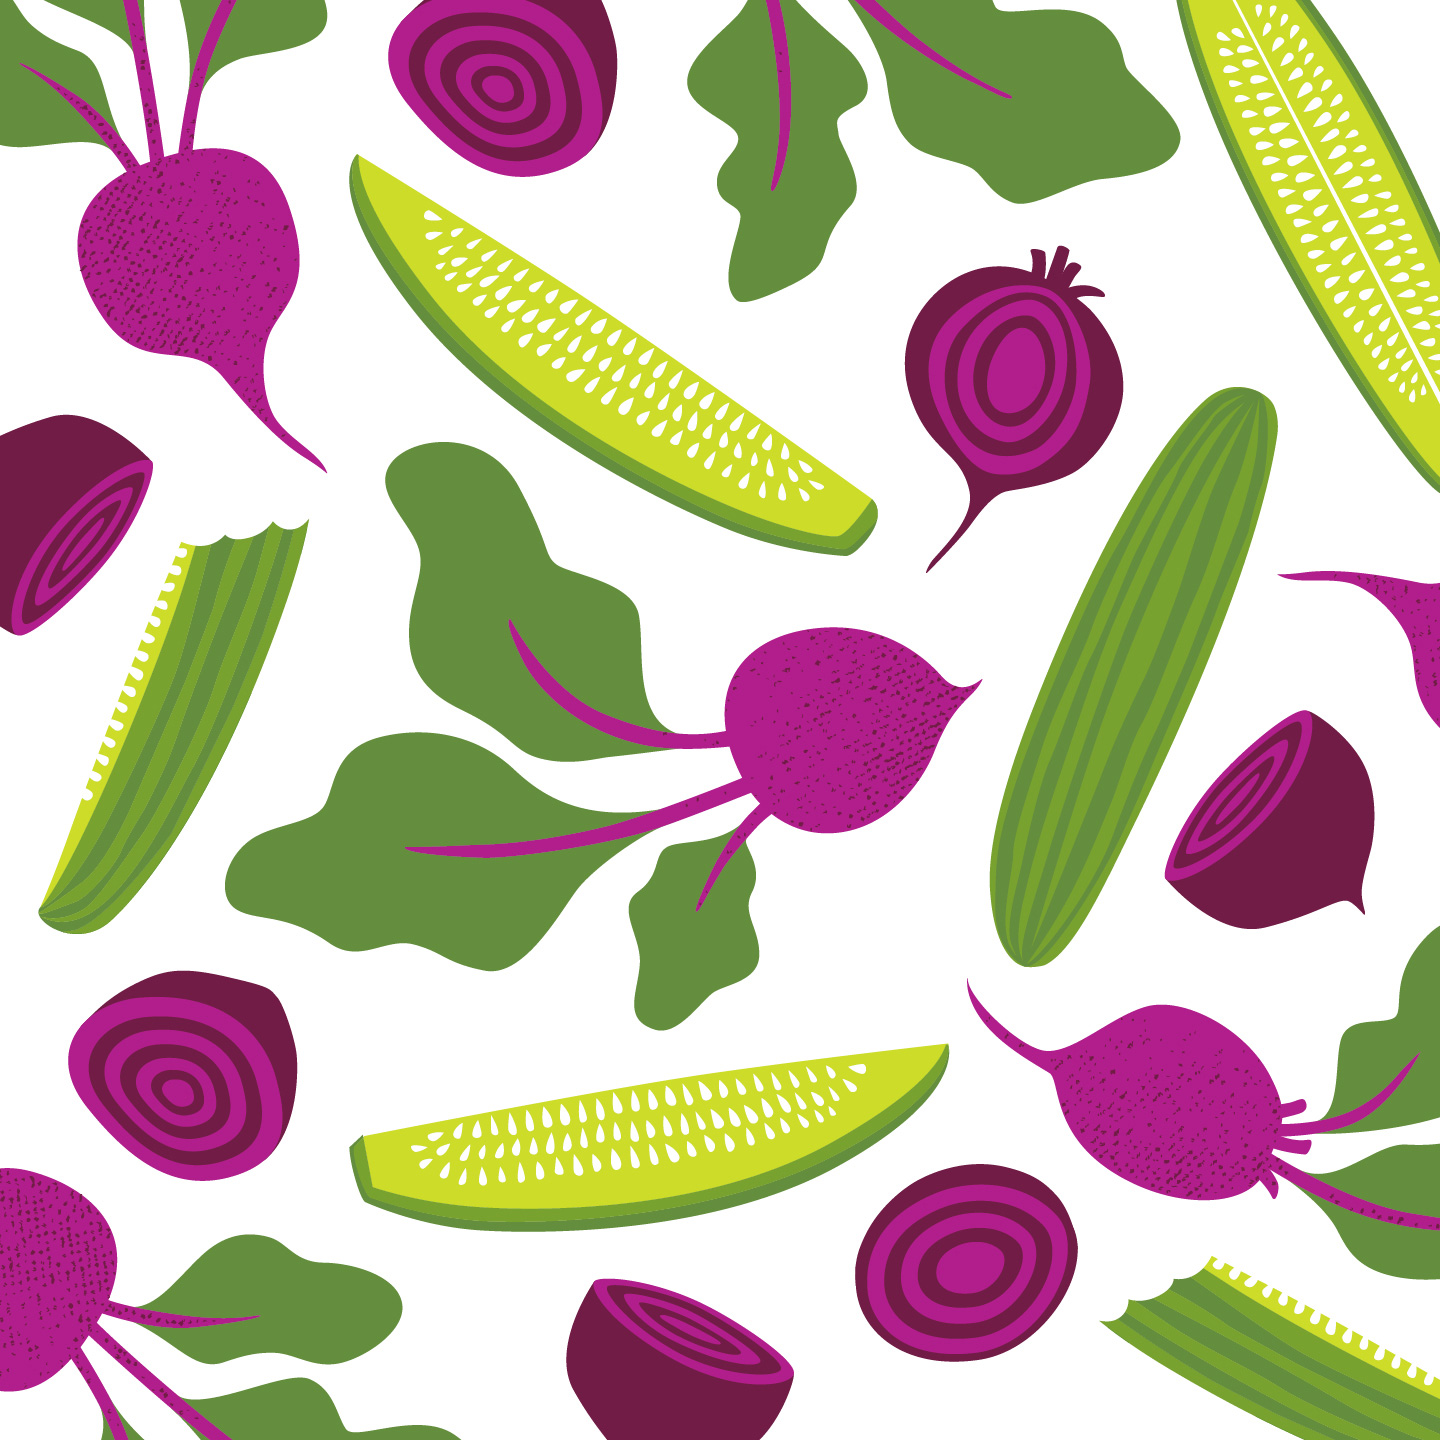 Beets-and-Pickle-Pattern